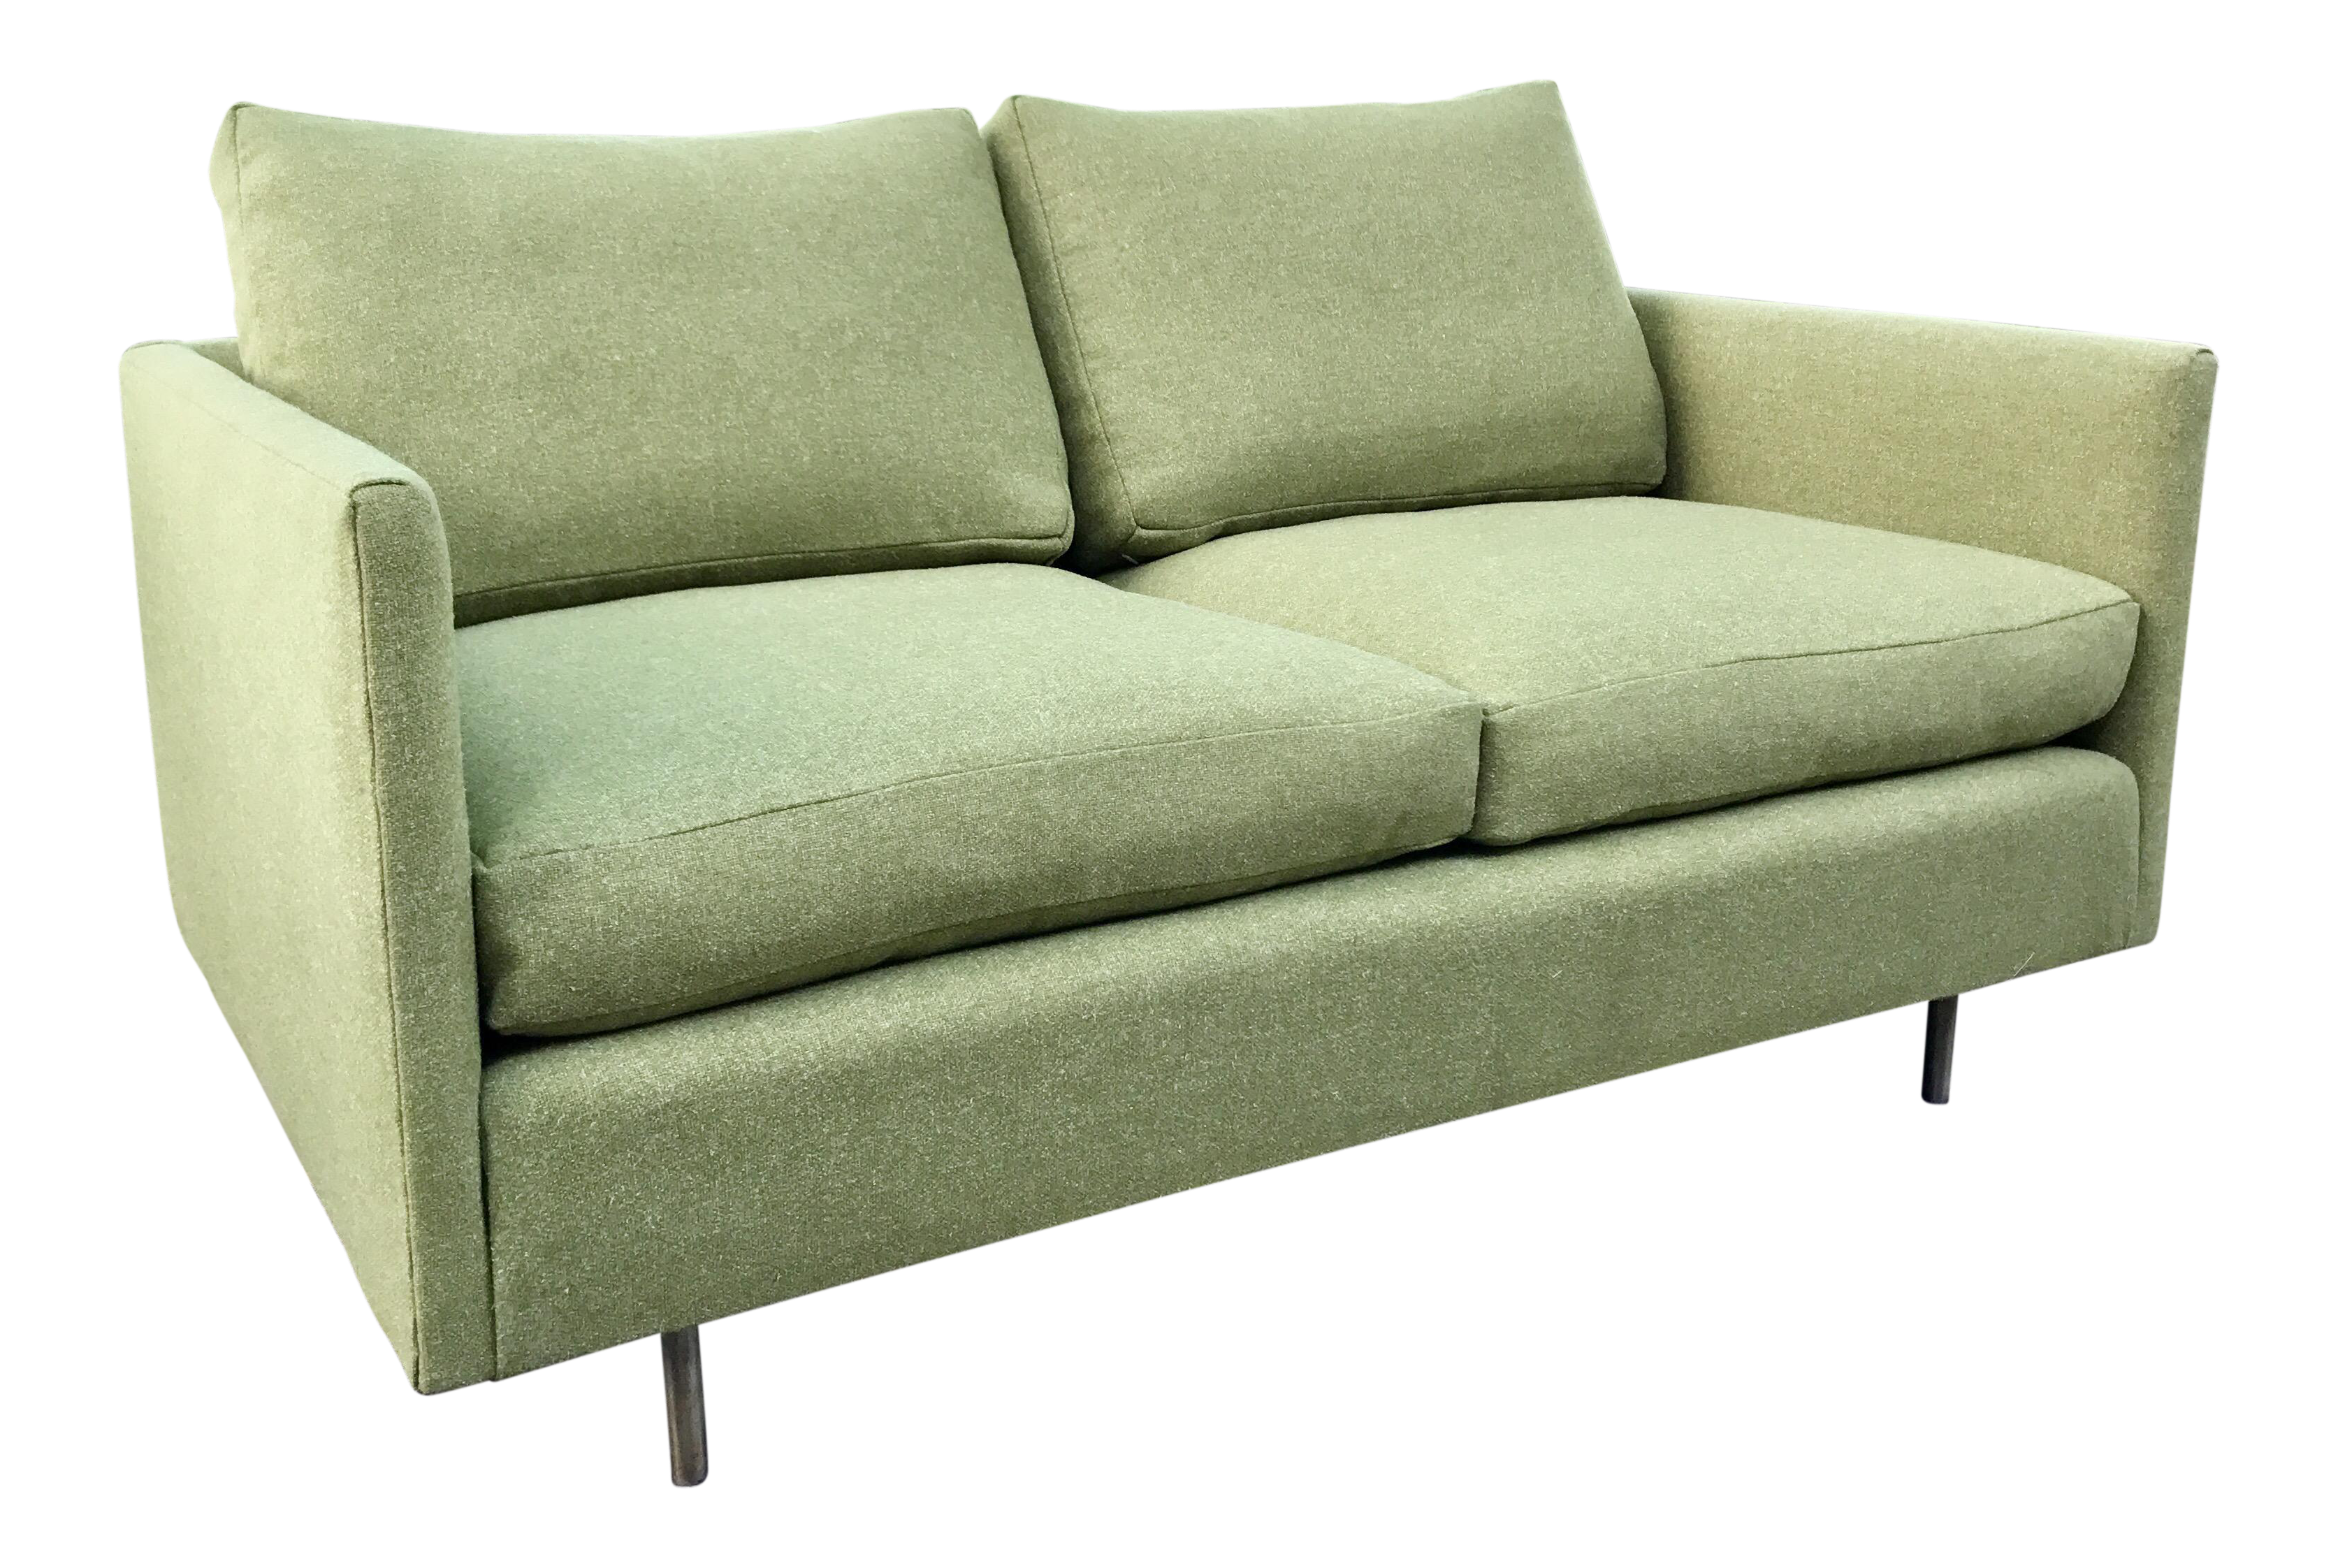 Vintage Mid Century D/R Sofa By Design Research